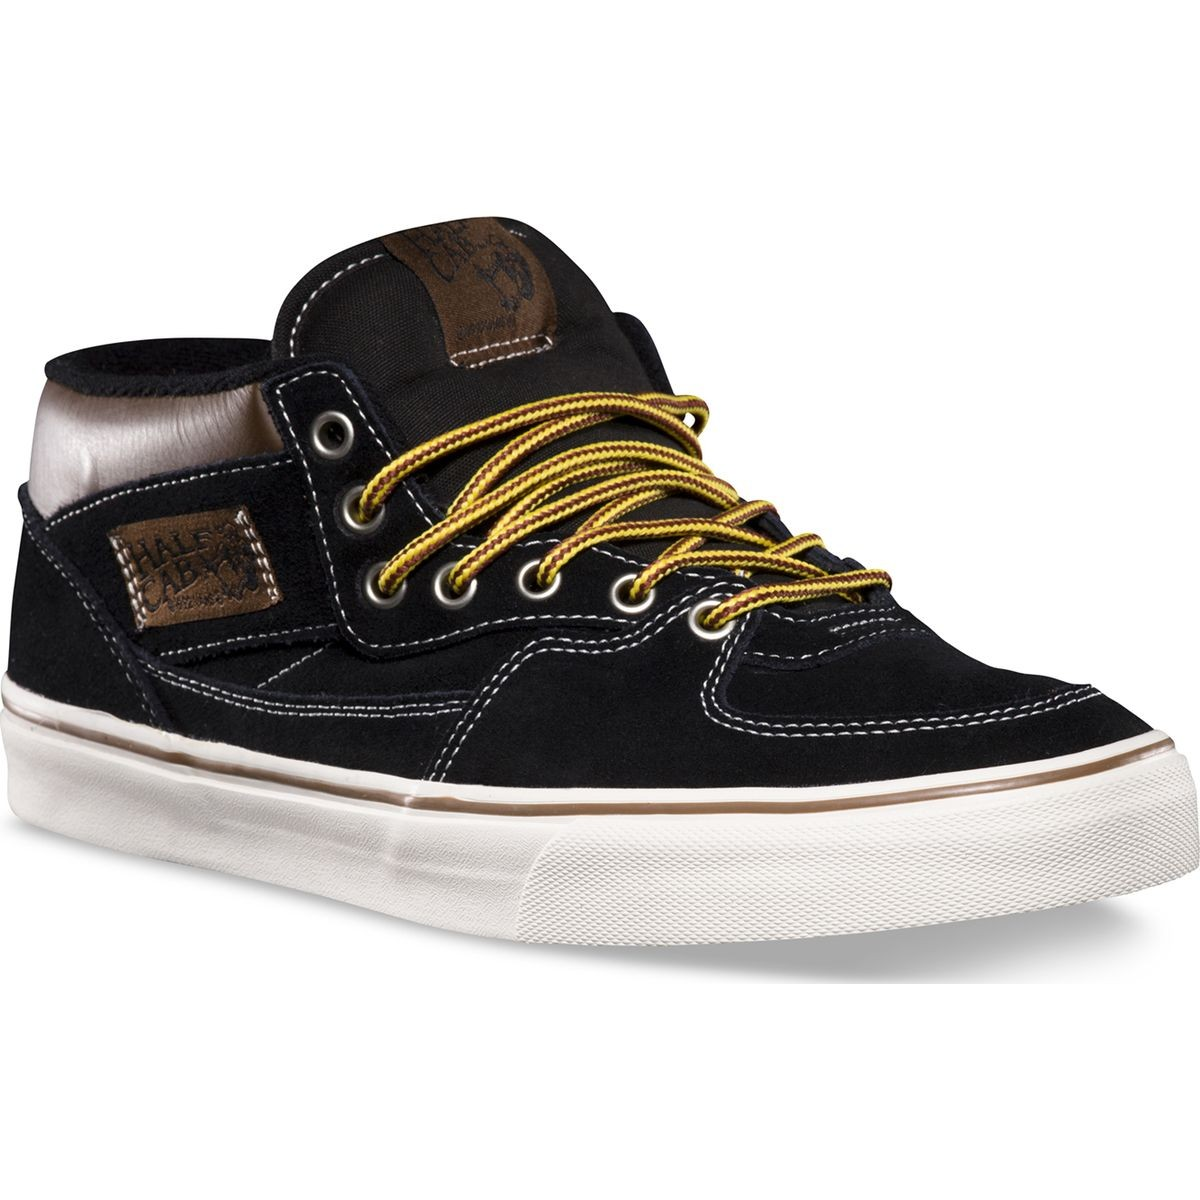 Vans Hiker Half Cab Shoes - Suede / Black